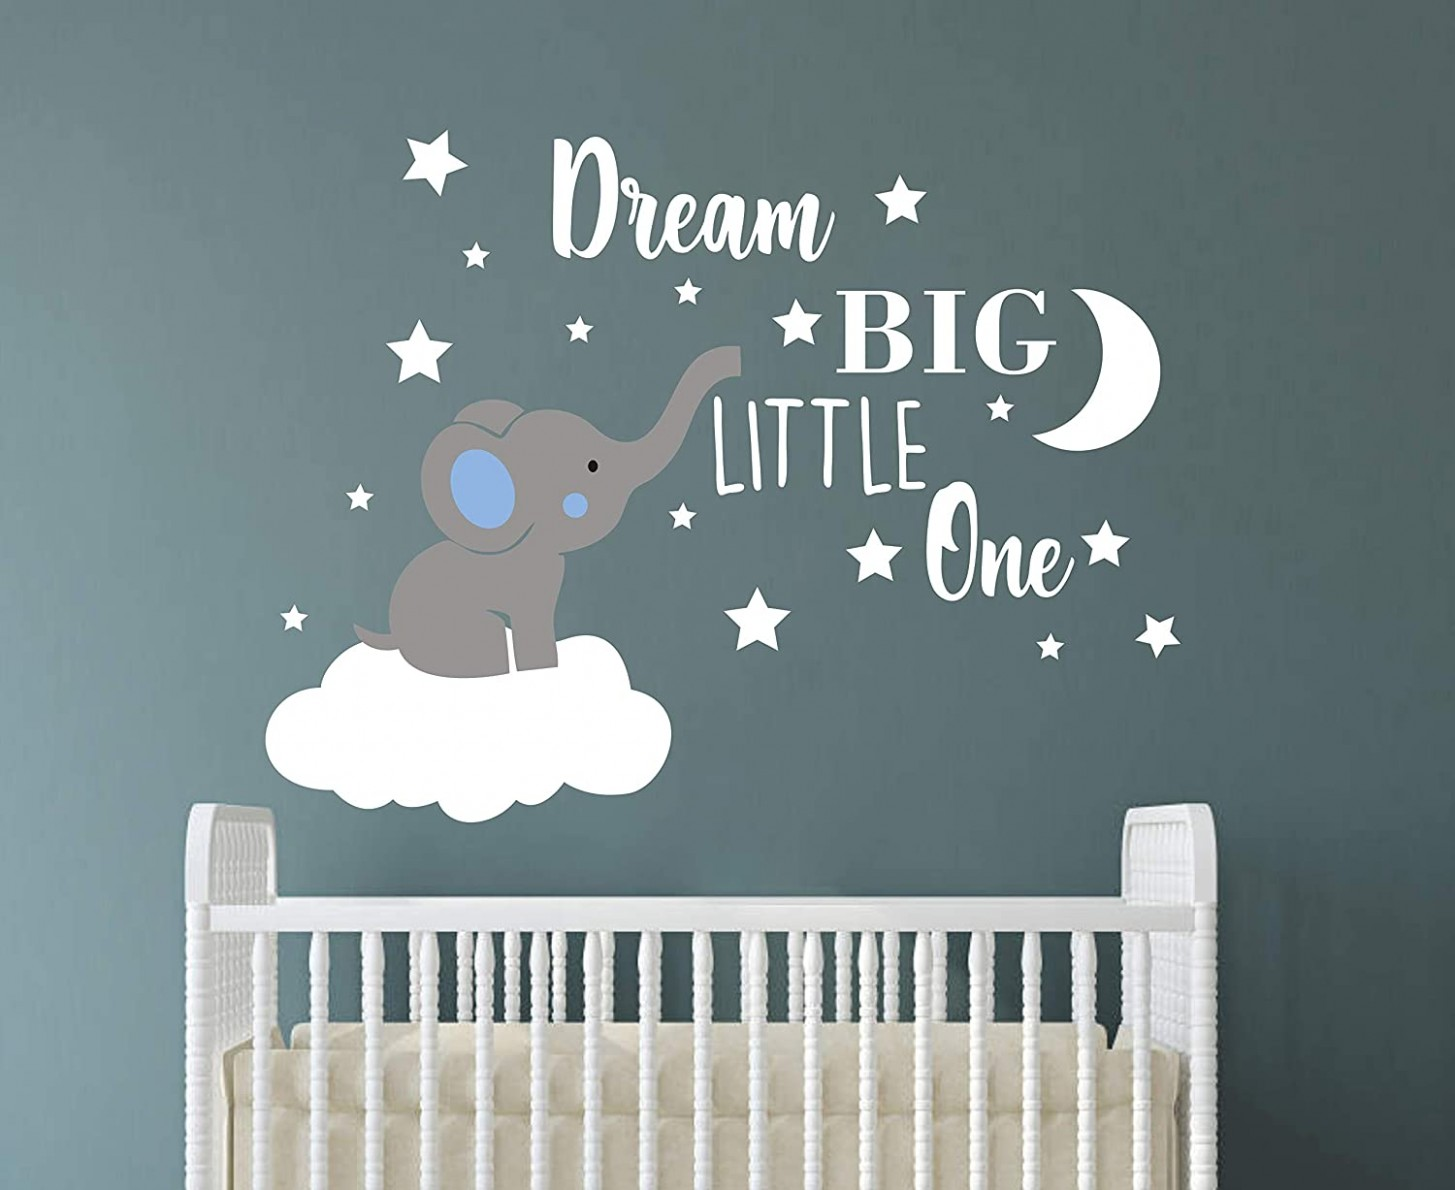 Dream Big Little One Elephant Wall Decal, Quote Wall Stickers, Baby Room  Wall Decor, Vinyl Wall Decals for Children Baby Kids Boy Girl Bedroom  Nursery  - Baby Room Wall